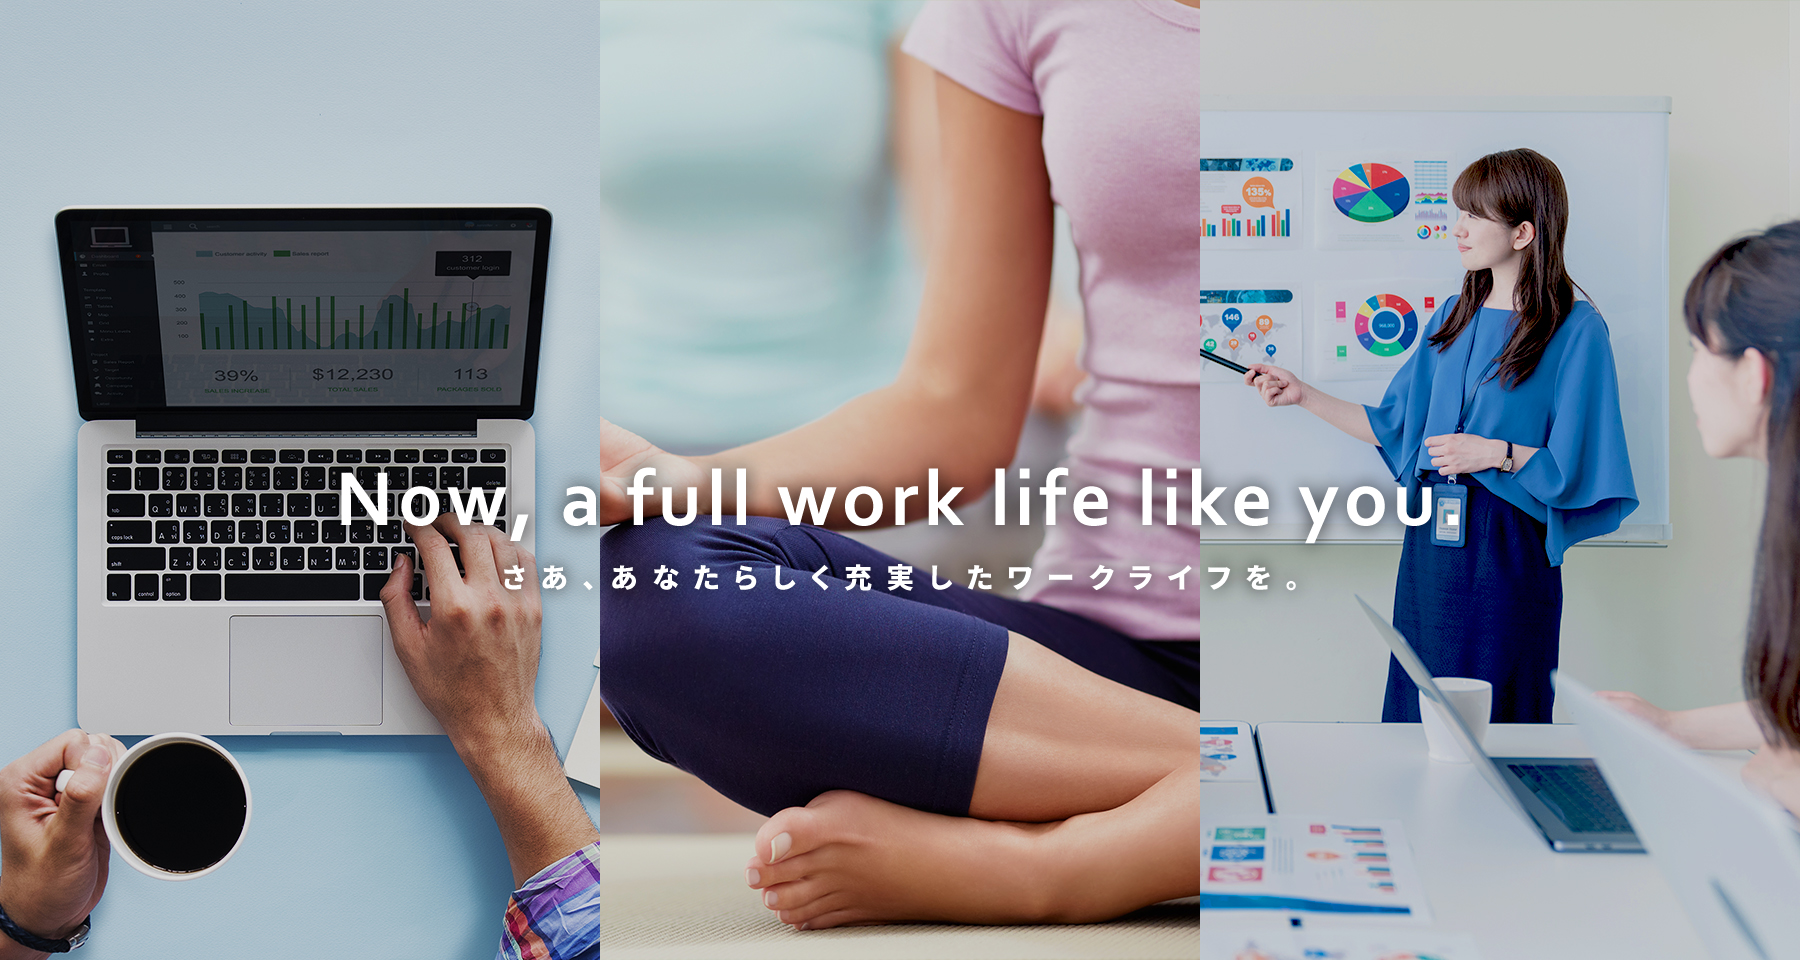 Now, a full work life like you. さあ、あなたらしく充実したワークライフを。